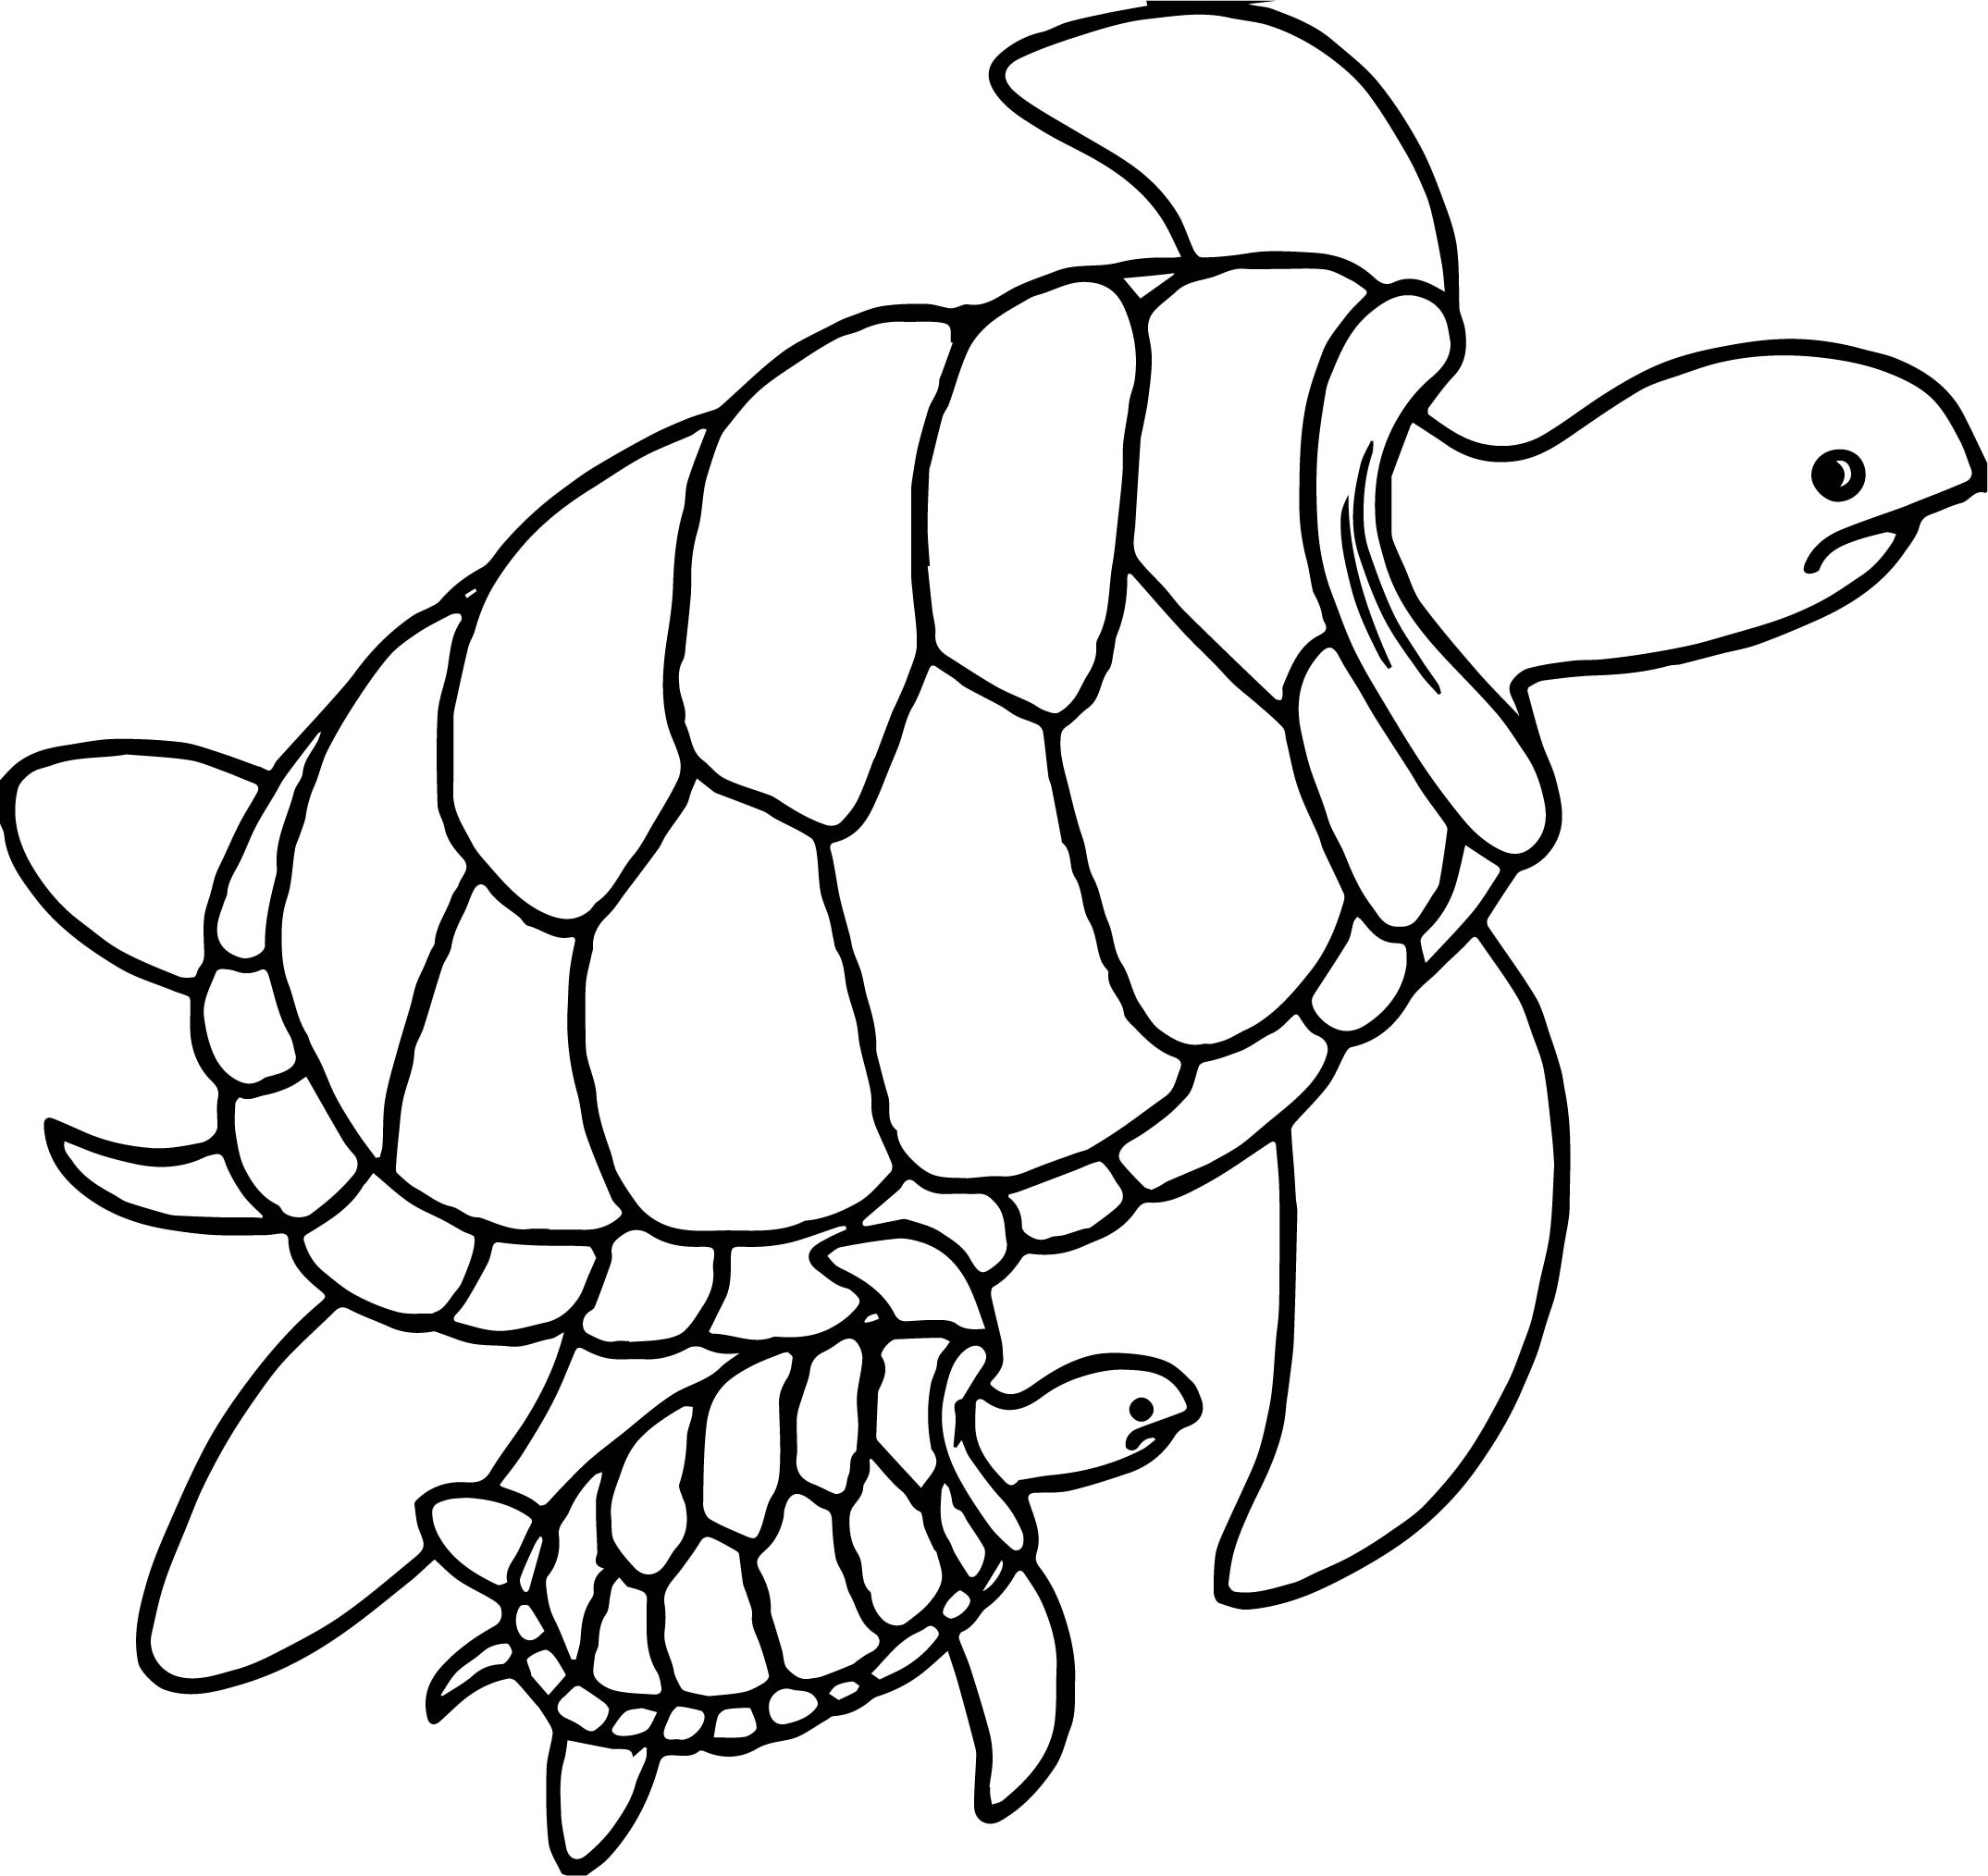 Turtle Coloring Book Coloring Pages for Kids